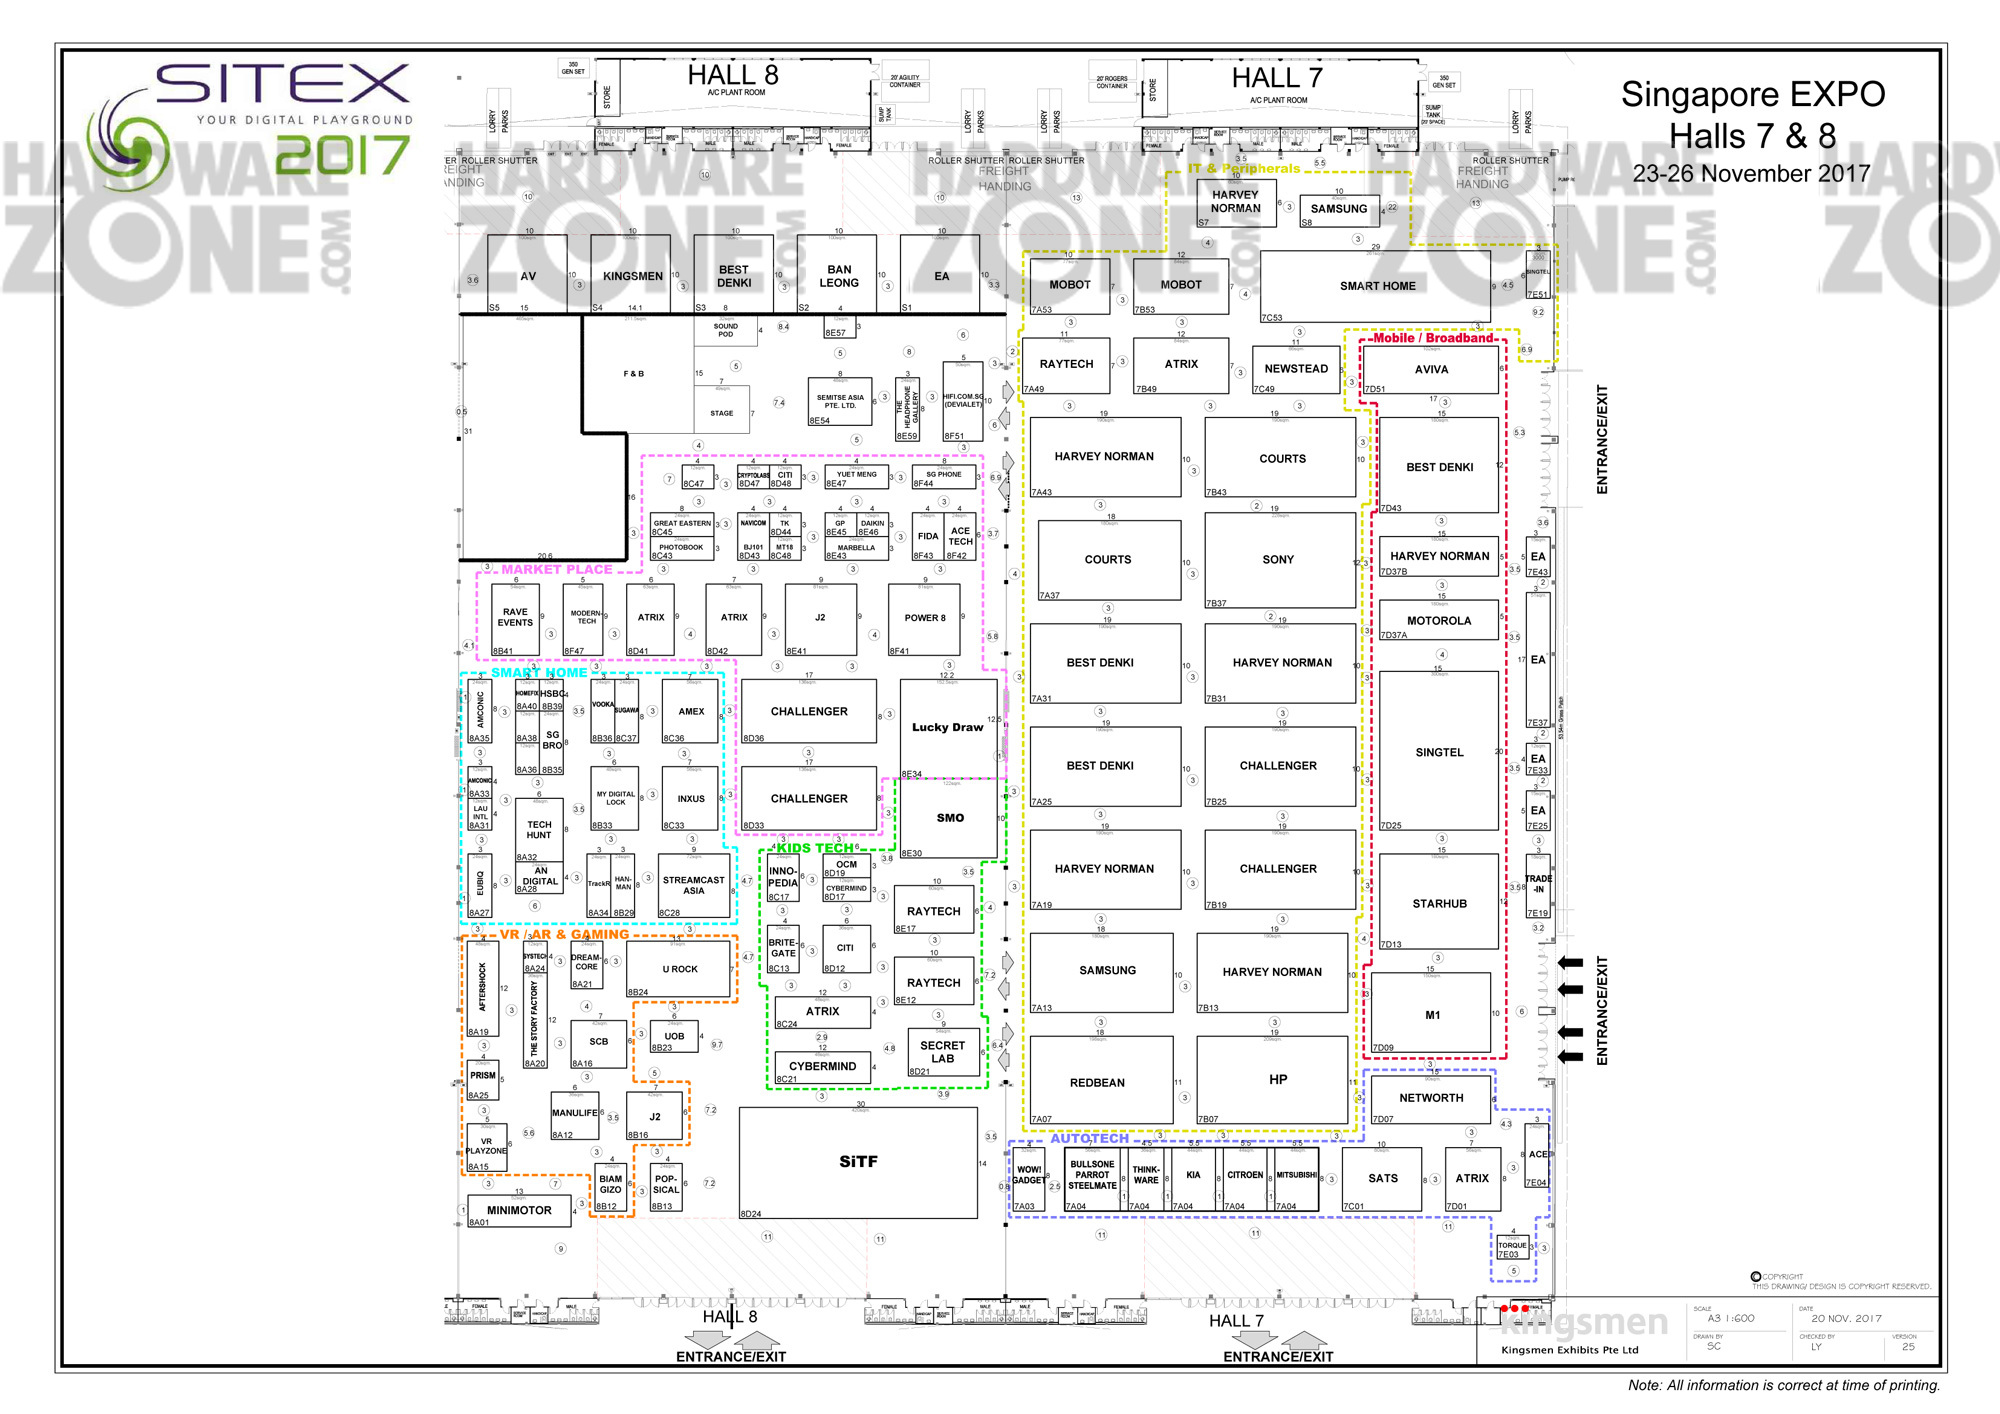 Sitex 2017 23 26 Nov Singapore Expo Halls 7 8 Hardwarezone Structured Wiring Homepro S At A Glance Floor Plan